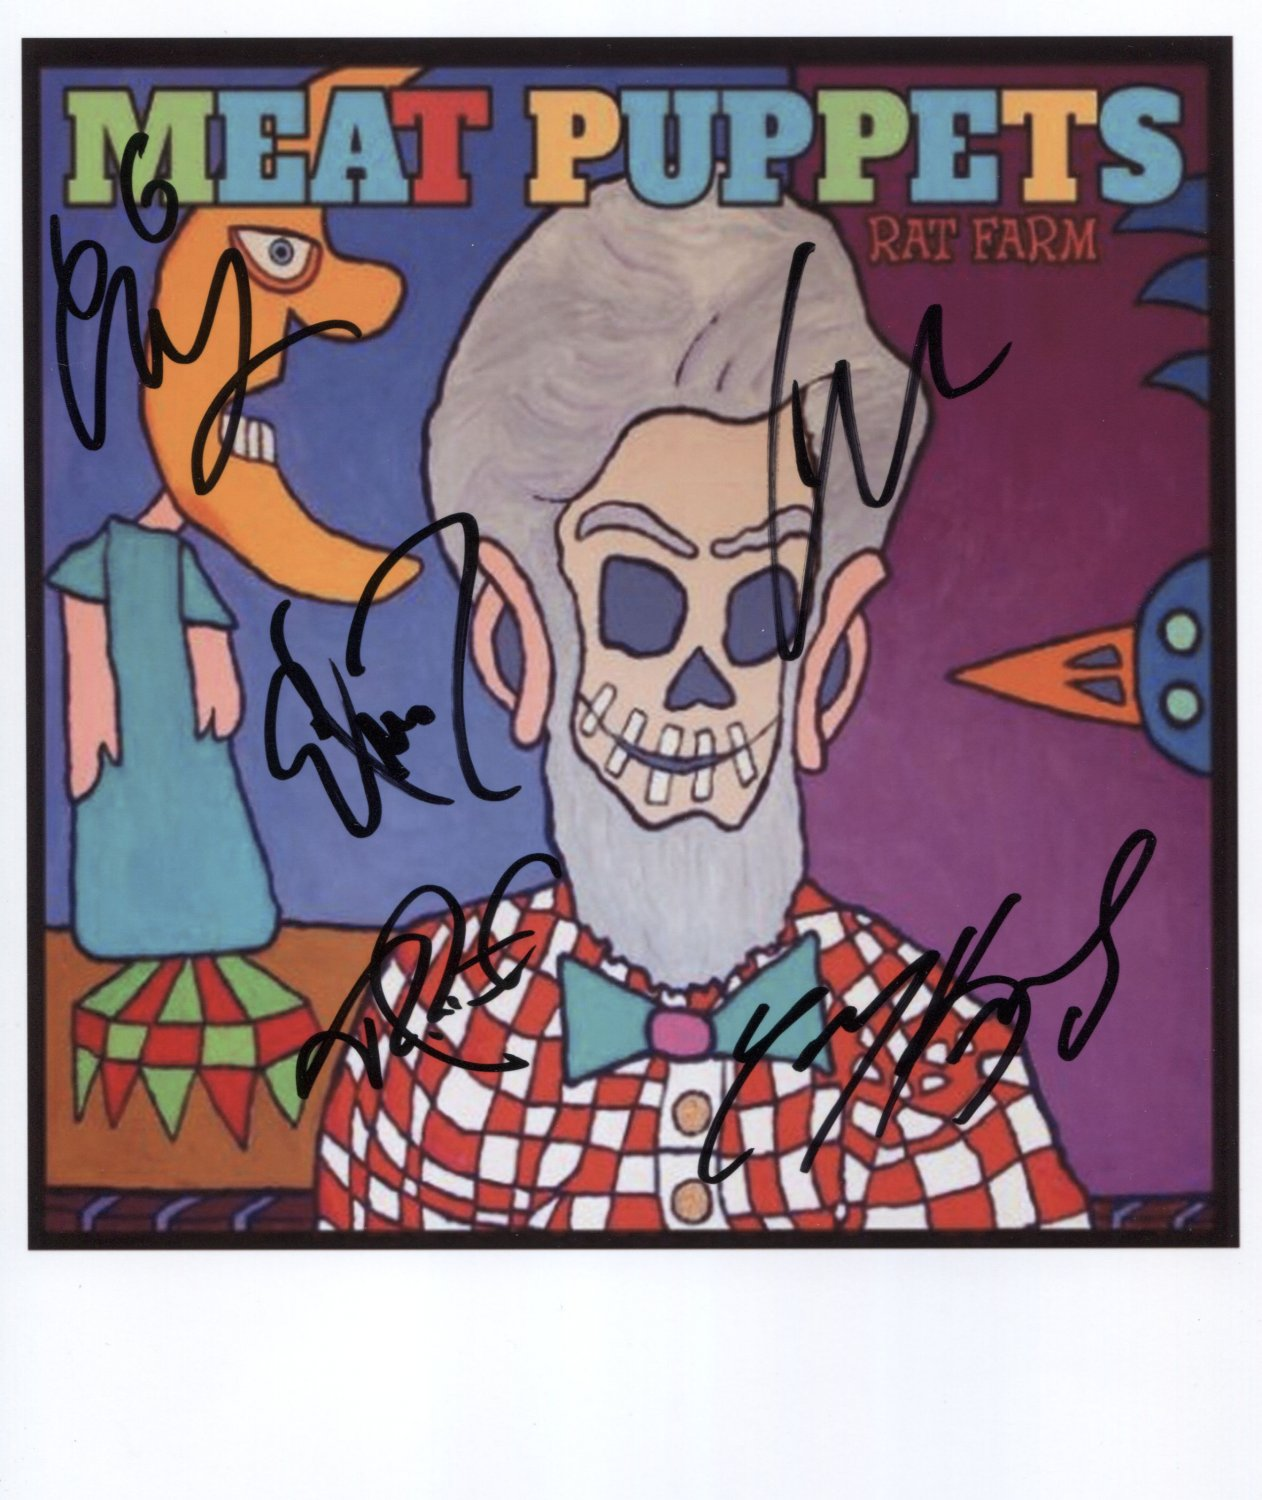 """Meat Puppets (Band) FULLY SIGNED 8"""" x 10"""" Photo + Certificate Of Authentication 100% Genuine"""